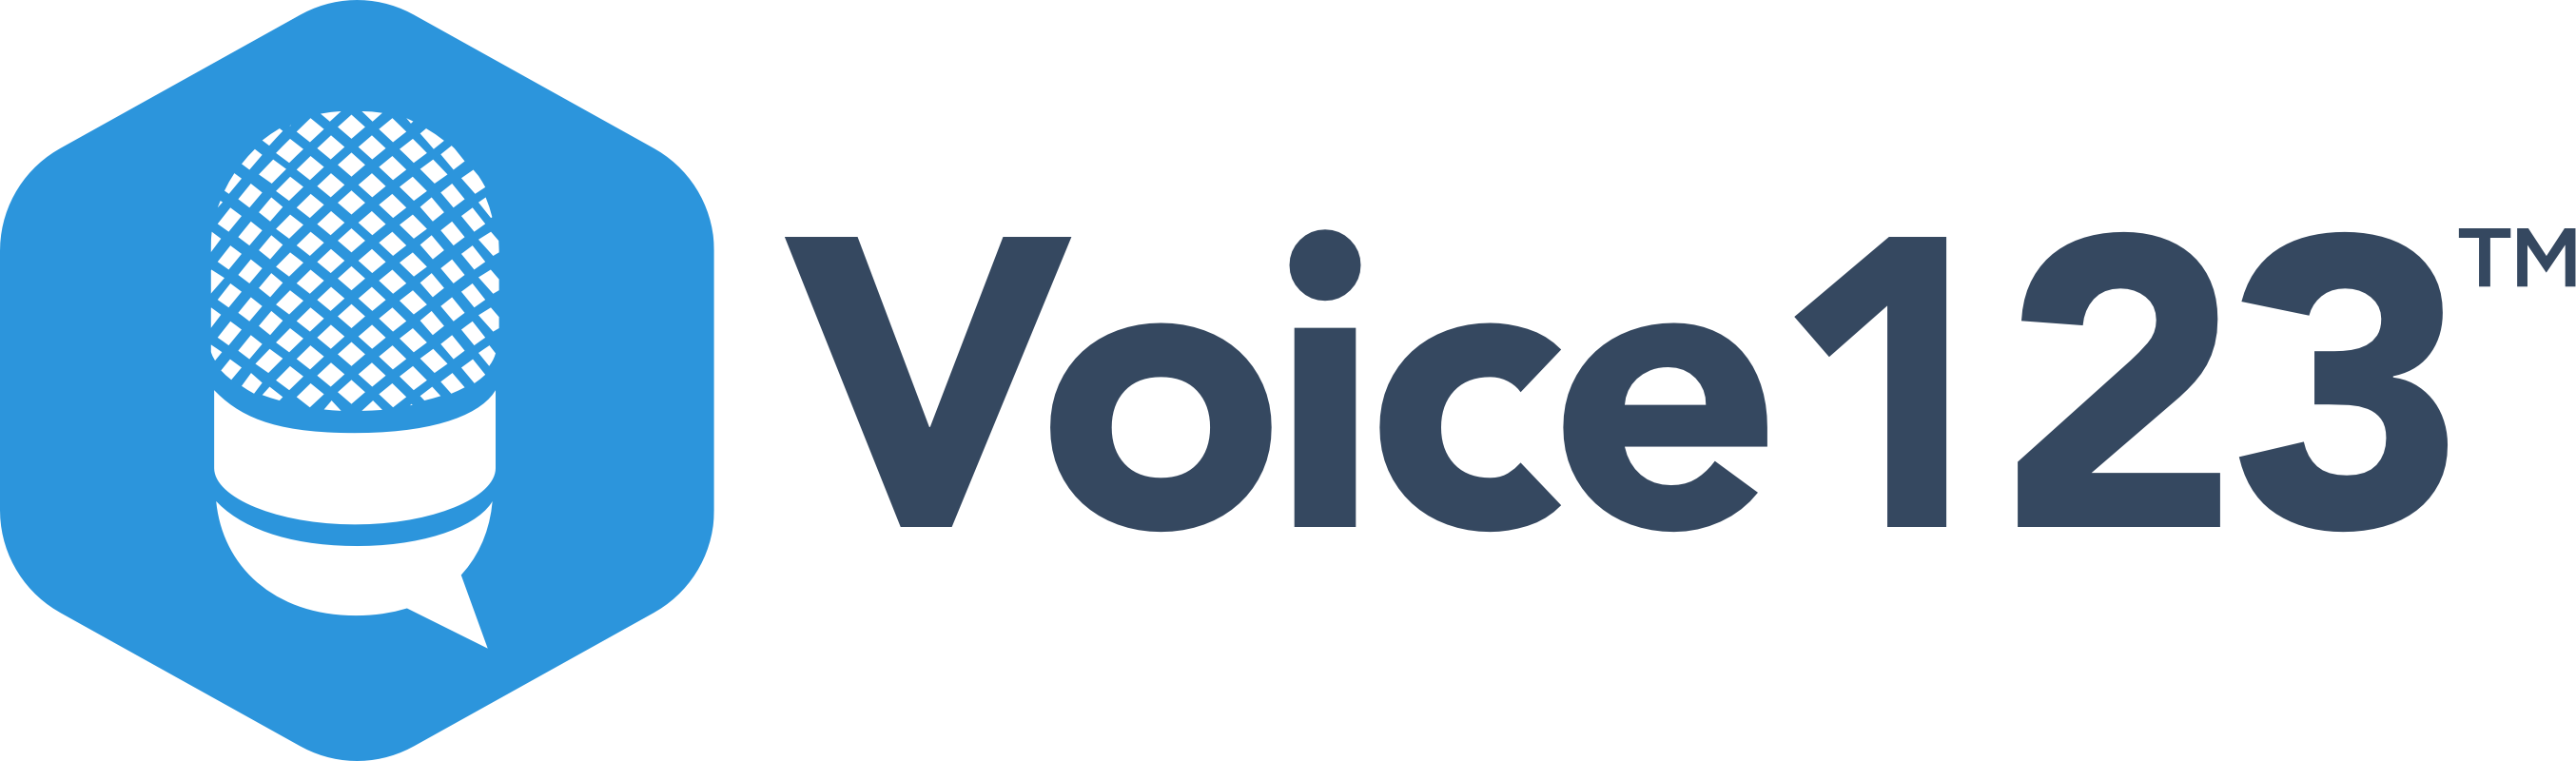 Voice123: World's first and most-trusted voice over marketplace